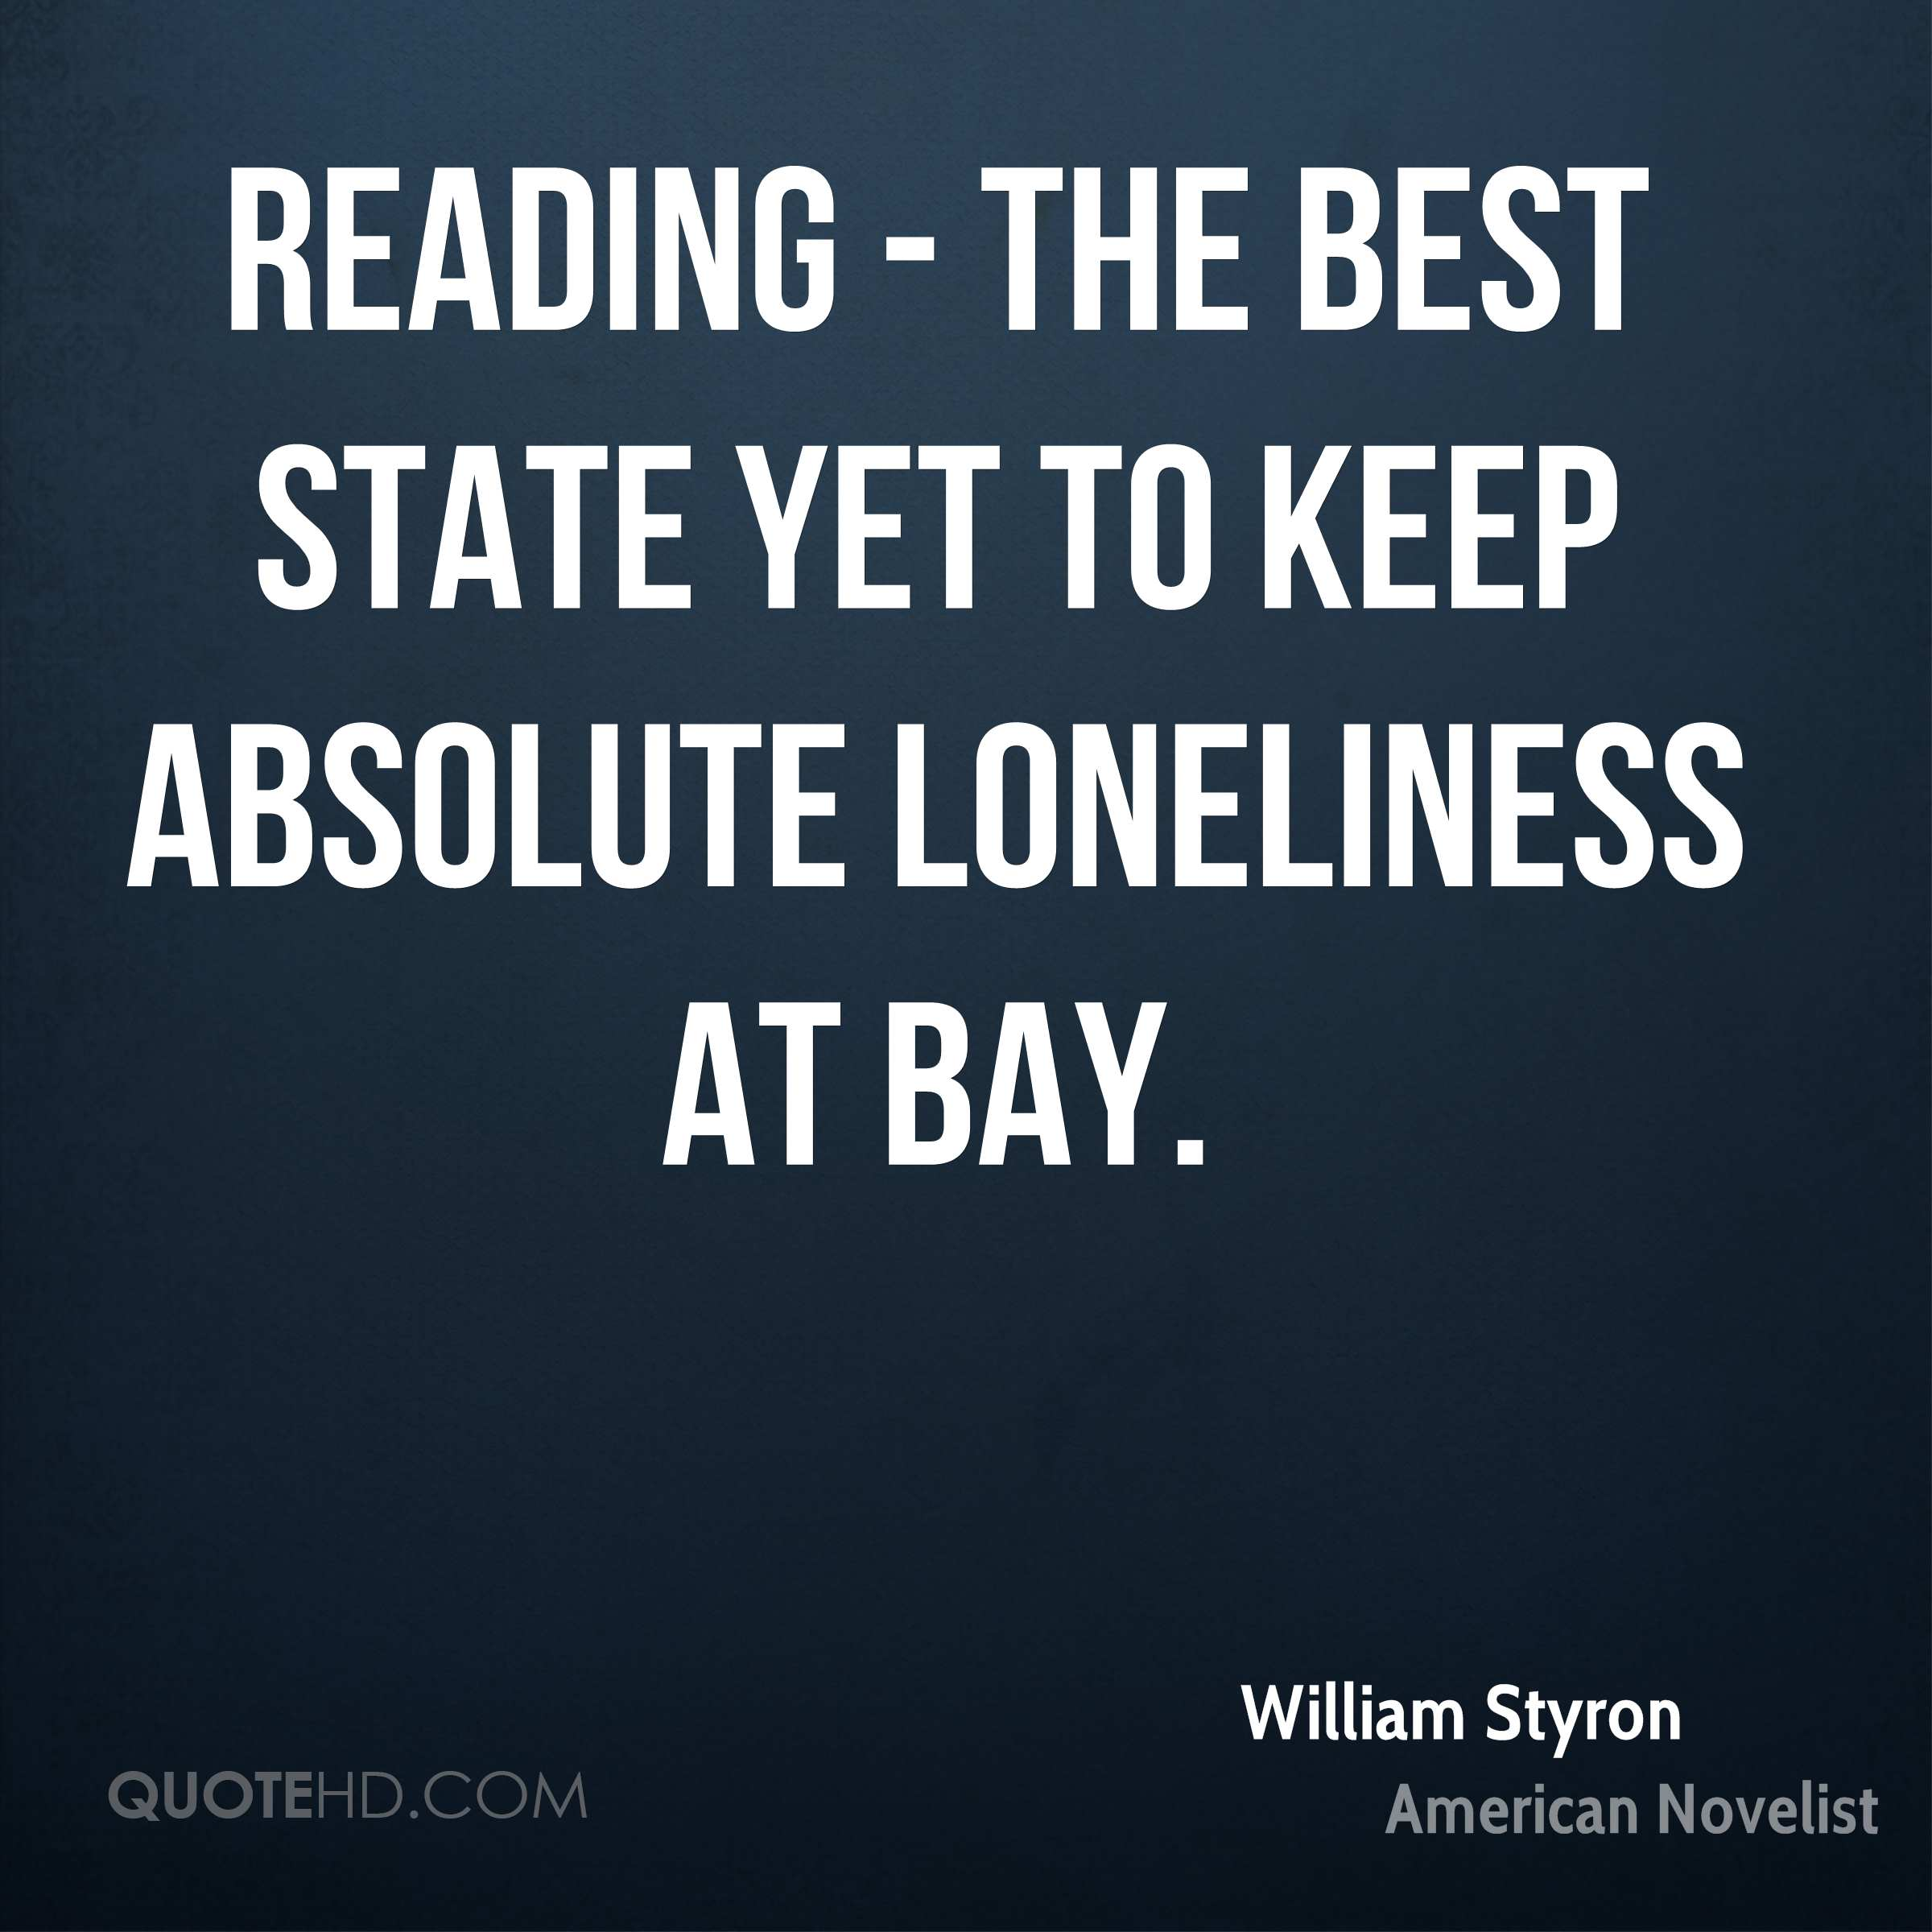 Reading - the best state yet to keep absolute loneliness at bay.